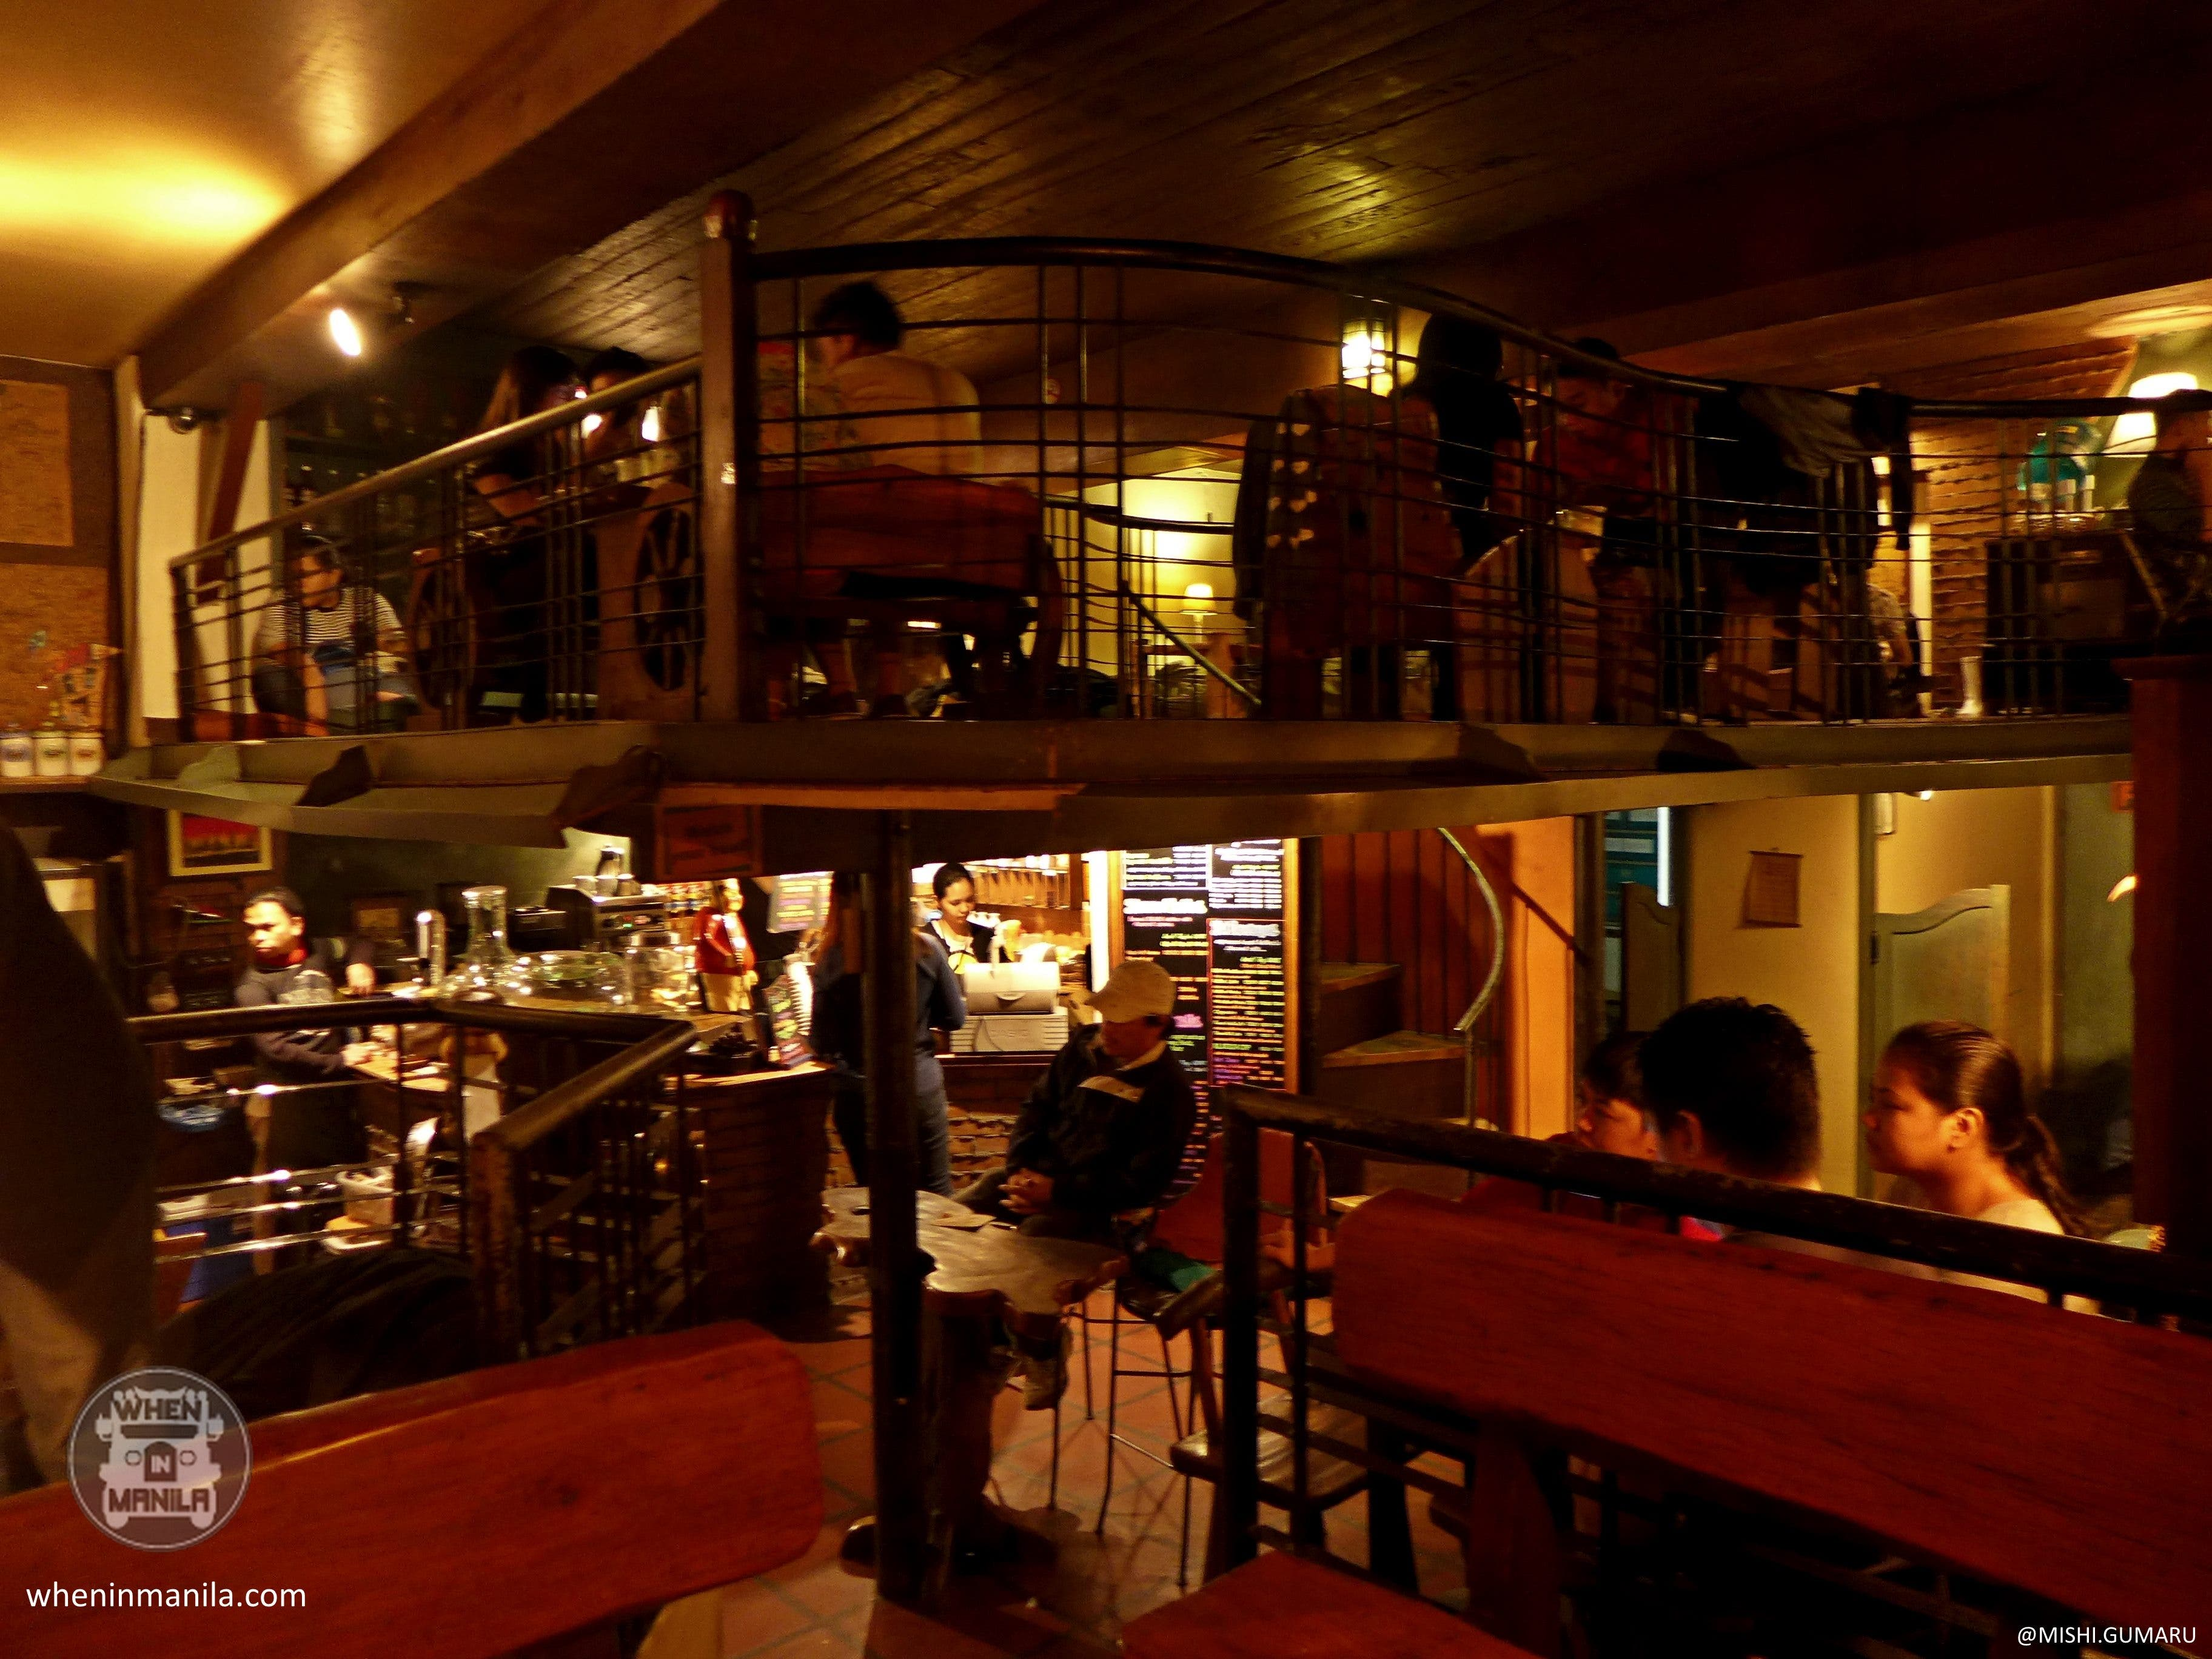 5-Cool-And-Quirky-Cafes-You-Must-Check-Out-When-In-Baguio21